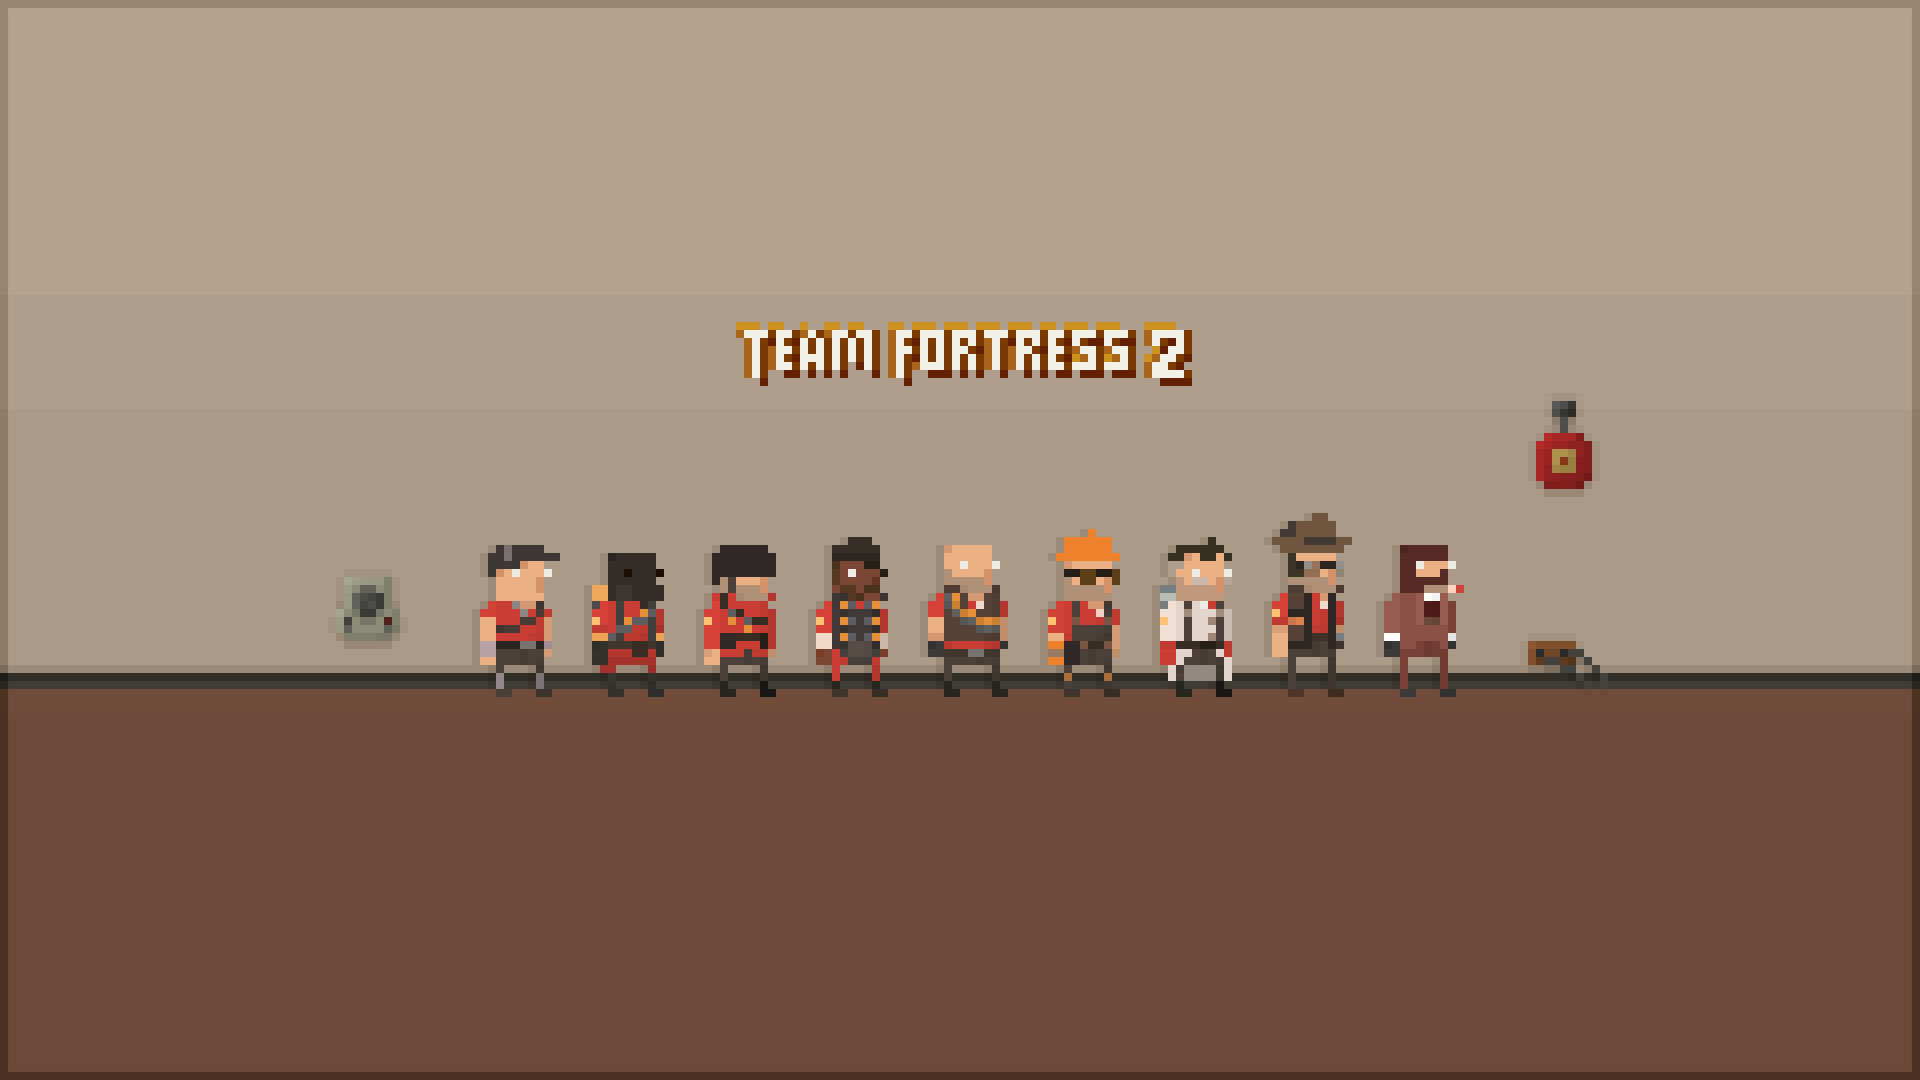 1920x1080 Games wallpaper gaming pixelated team fortress 2